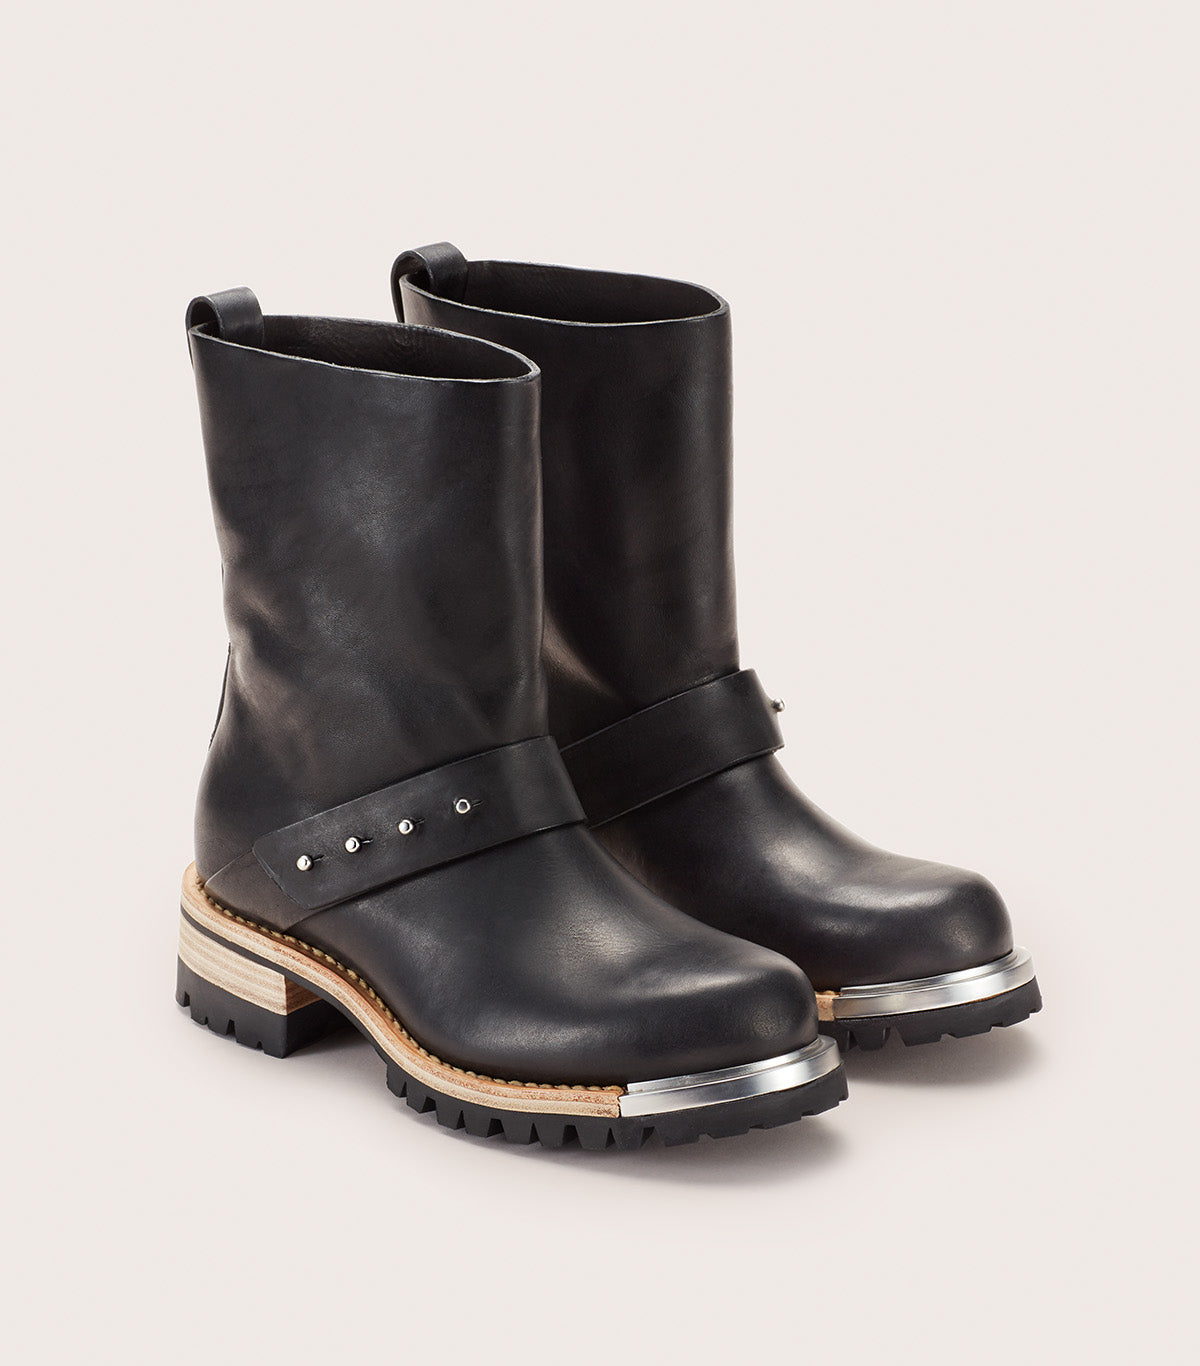 METAL UNLINED MOTO BOOT